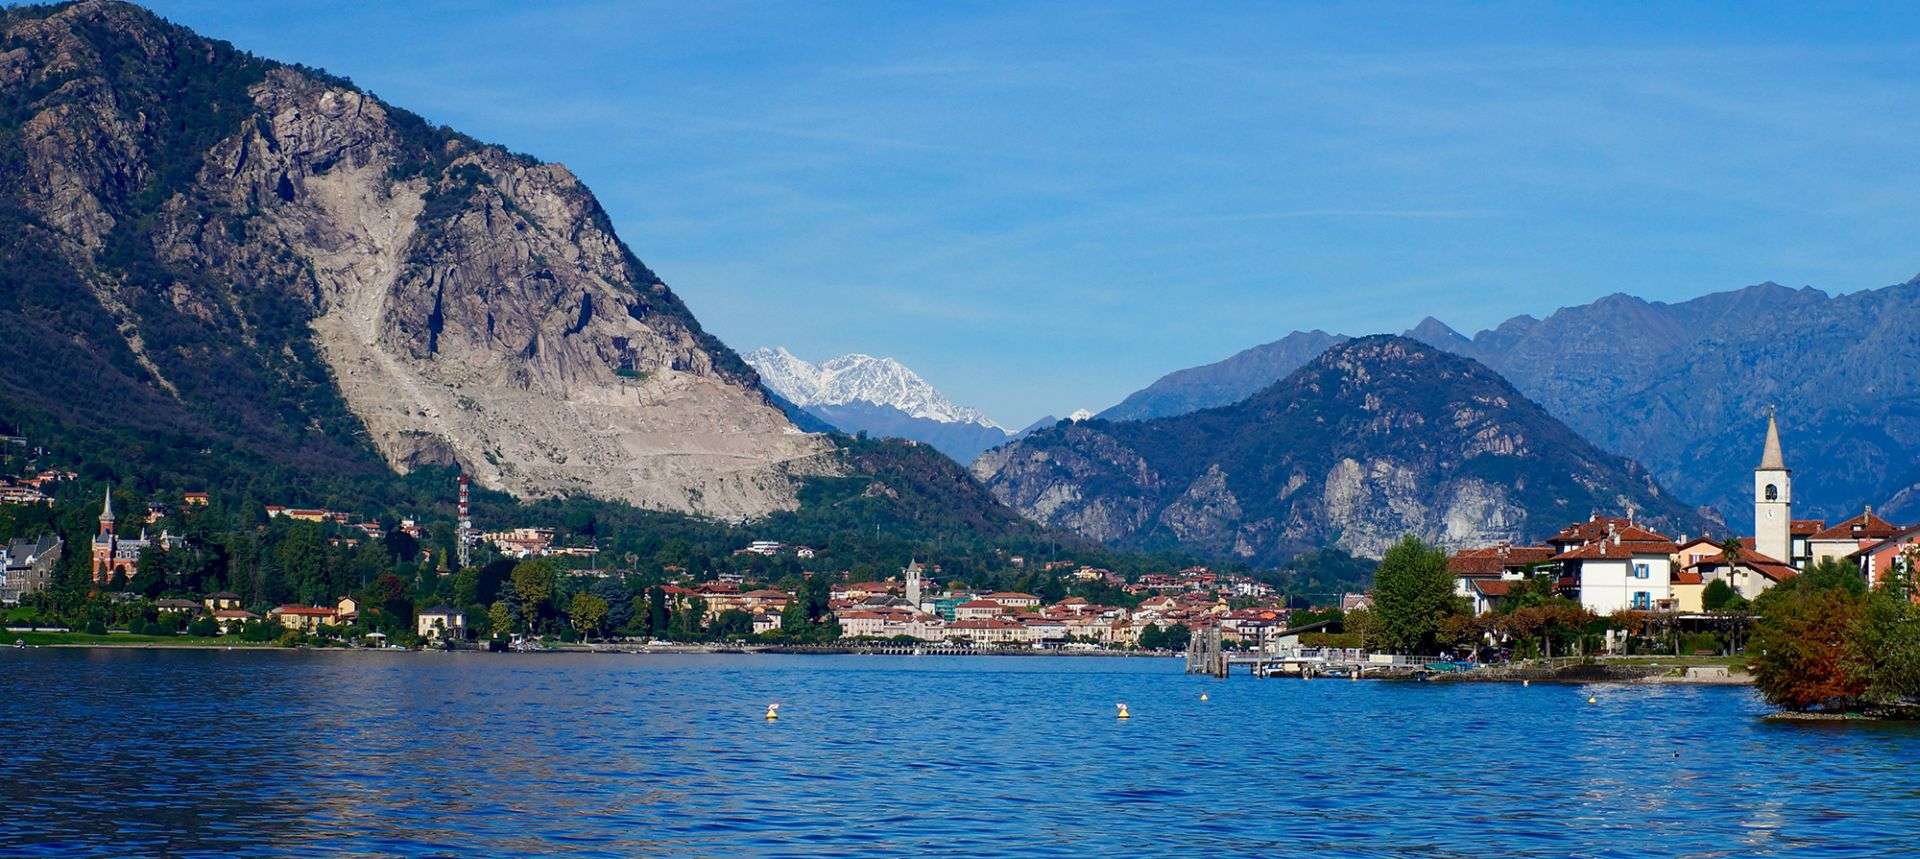 Randonnee Tours offers cycling and hiking tours in Italy, in the region of Italian Lakes